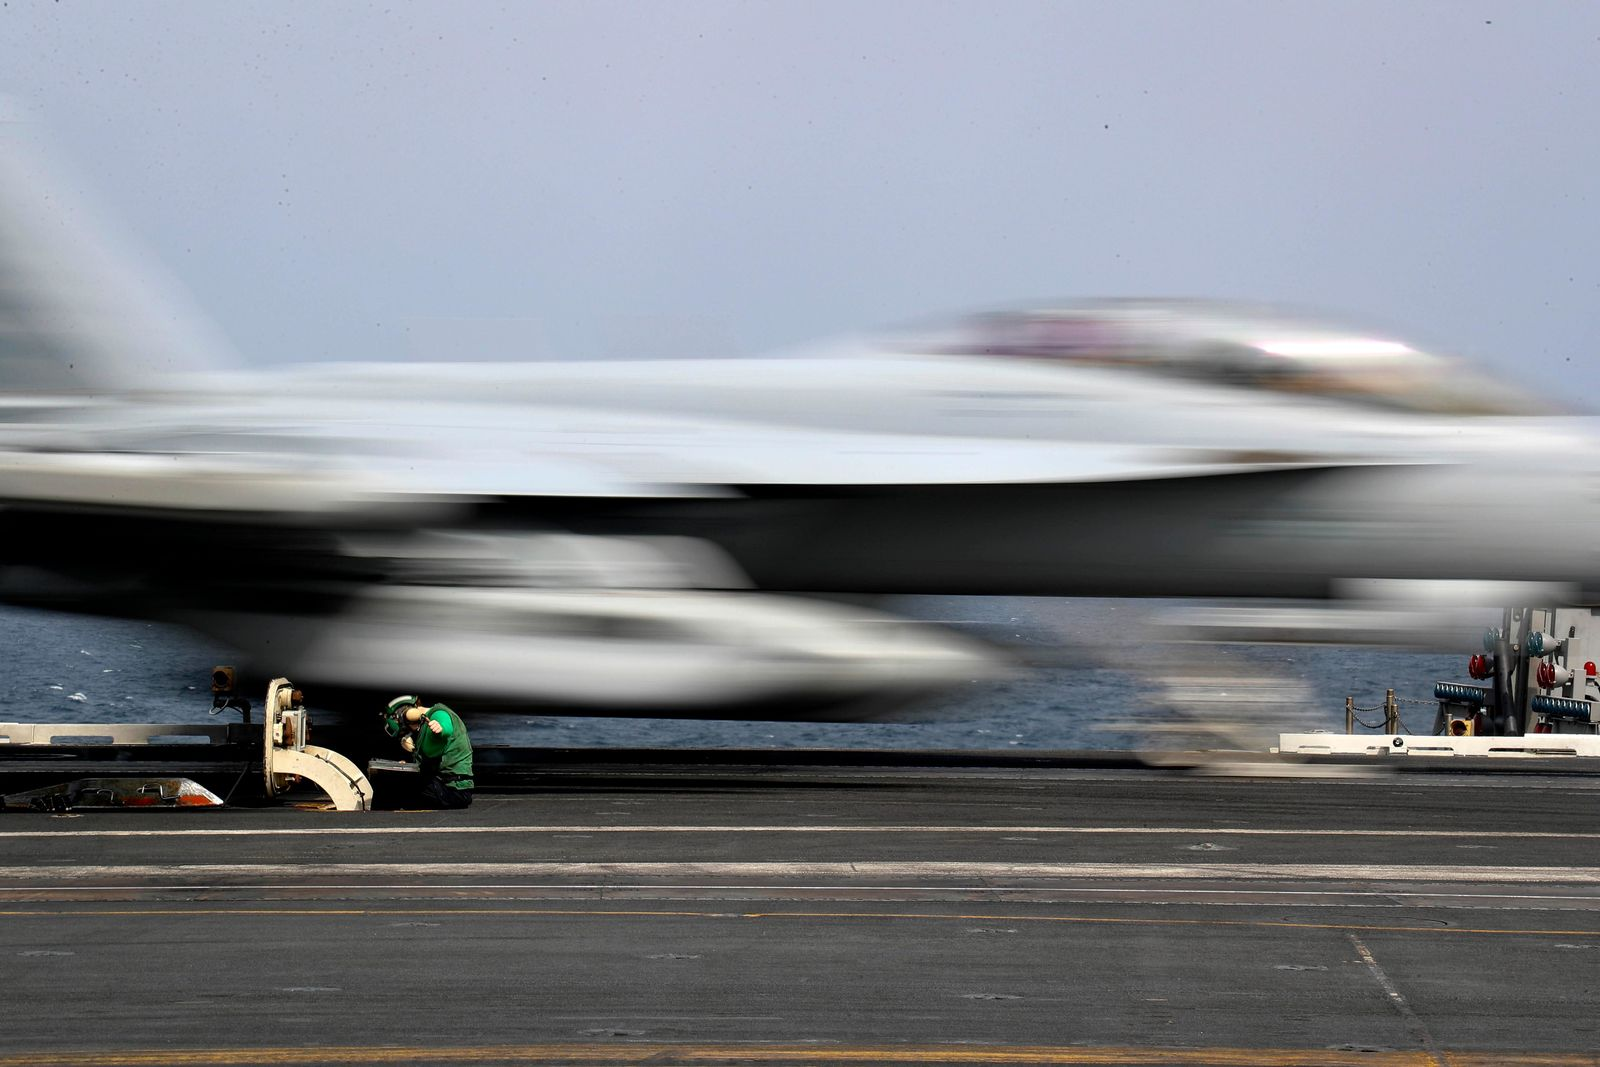 In this Thursday, May 16, 2019 photograph released by the U.S. Navy, Aviation Boatswain's Mate Airman Kayla Pettit operates a center deck station as an F-18 Super Hornet takes off from the USS Abraham Lincoln aircraft carrier in the Arabian Sea. (Mass Communication Specialist 3rd Class Jeff Sherman, U.S. Navy via AP)